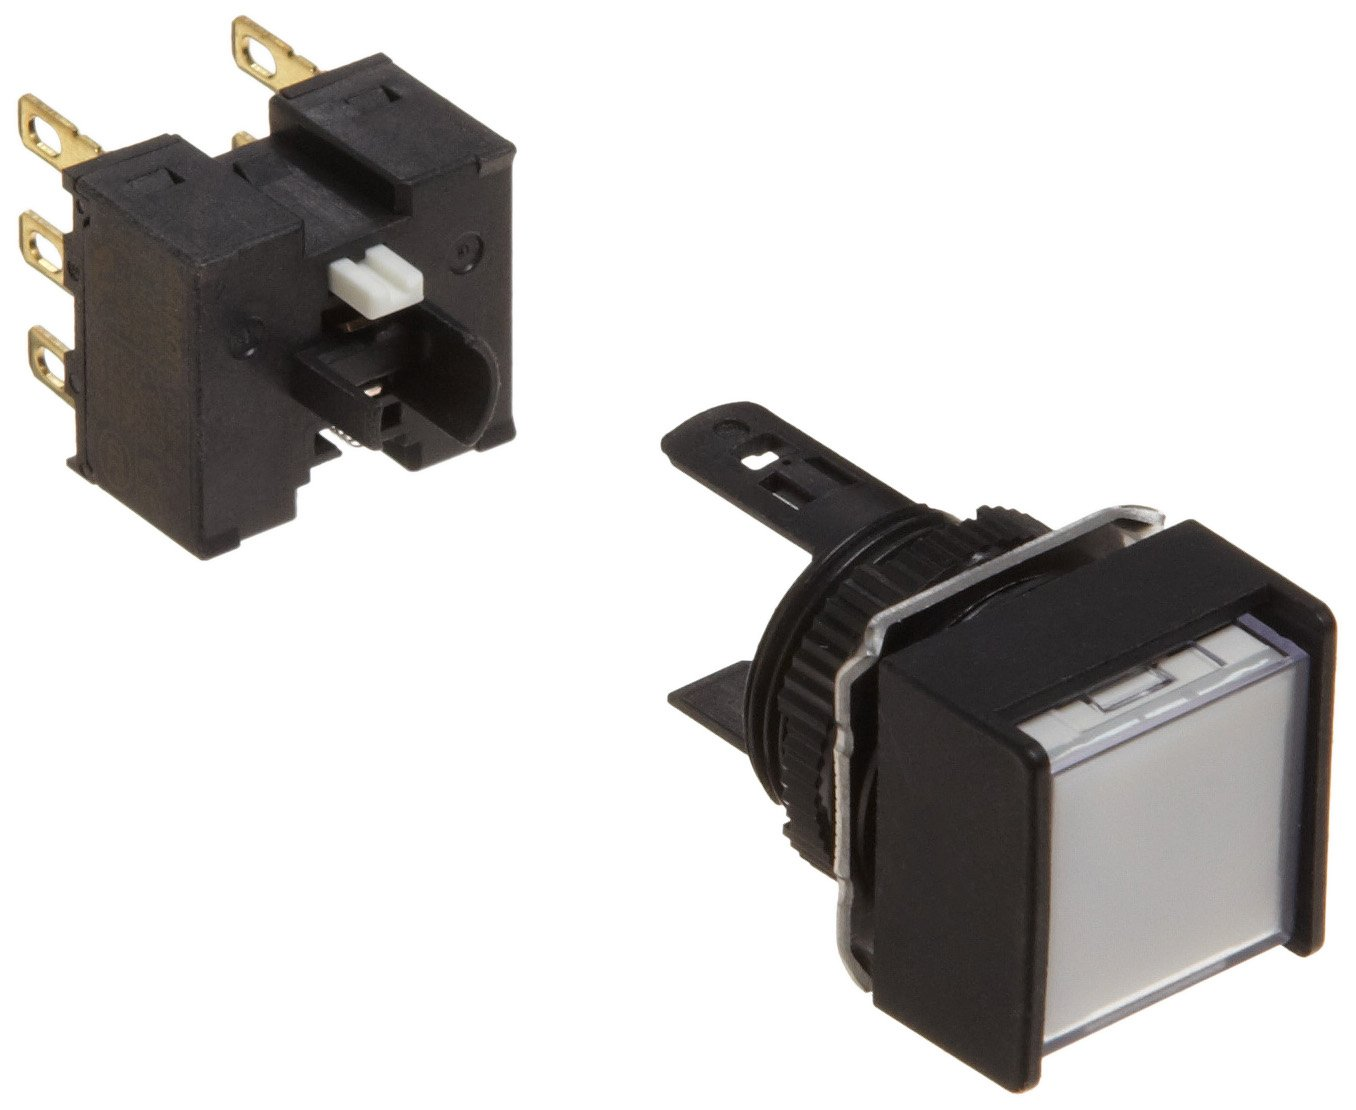 Omron A165L-AWM-24D-2 Two Way Guard Type Pushbutton and Switch, Solder Terminal, IP65 Oil-Resistant, 16mm Mounting Aperture, LED Lighted, Momentary Operation, Square, White, 24 VDC Rated Voltage, Double Pole Double Throw Contacts